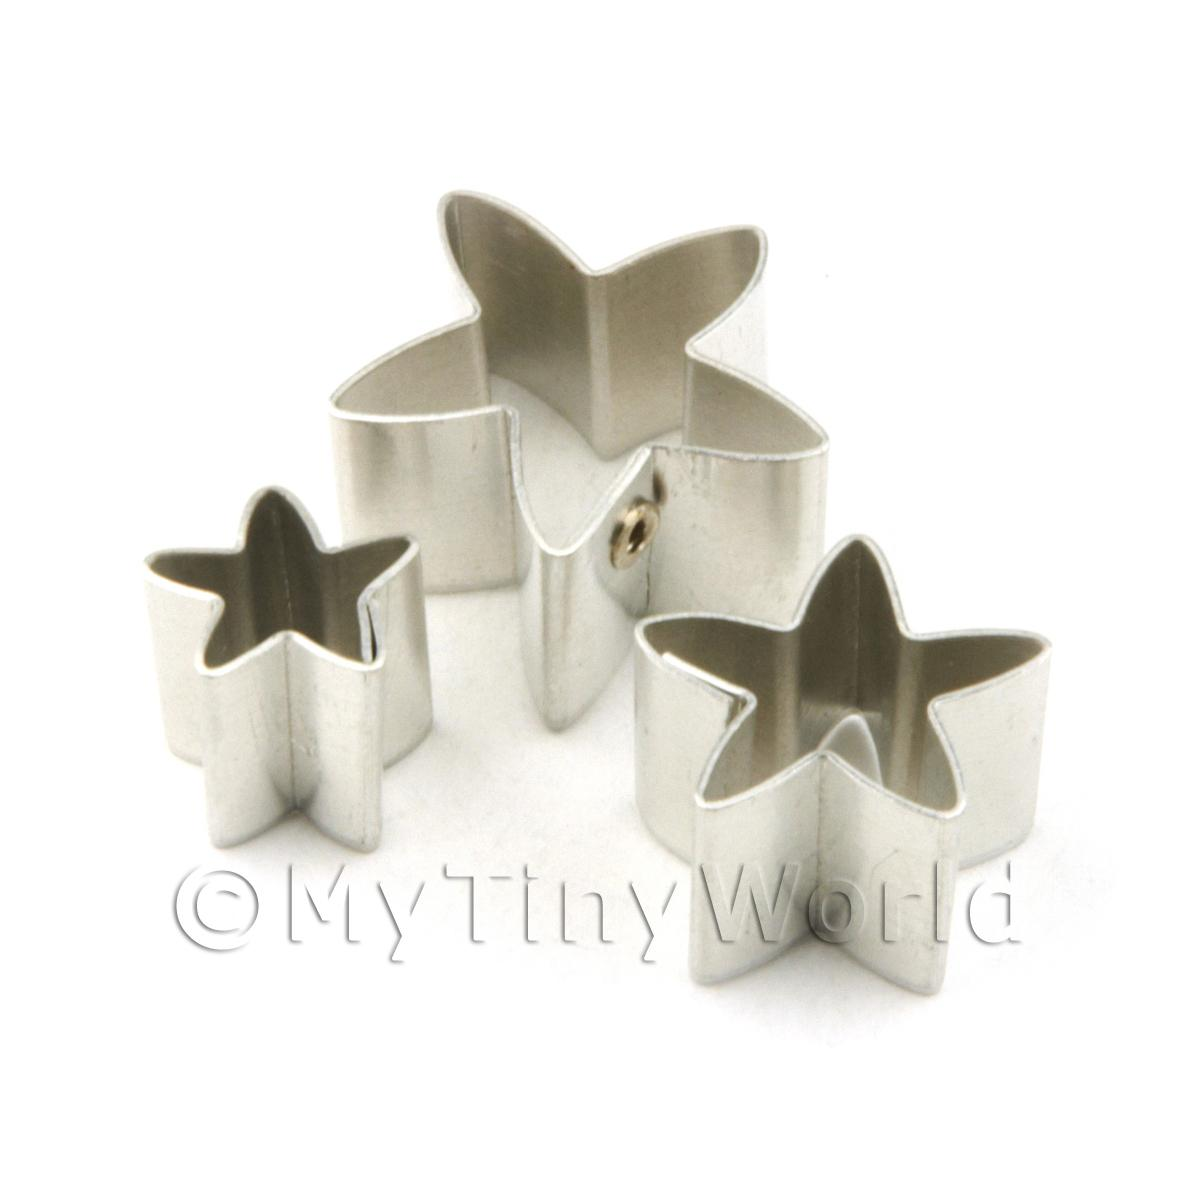 Set of 3 Assorted Size Metal Star Sugar Craft Cutters